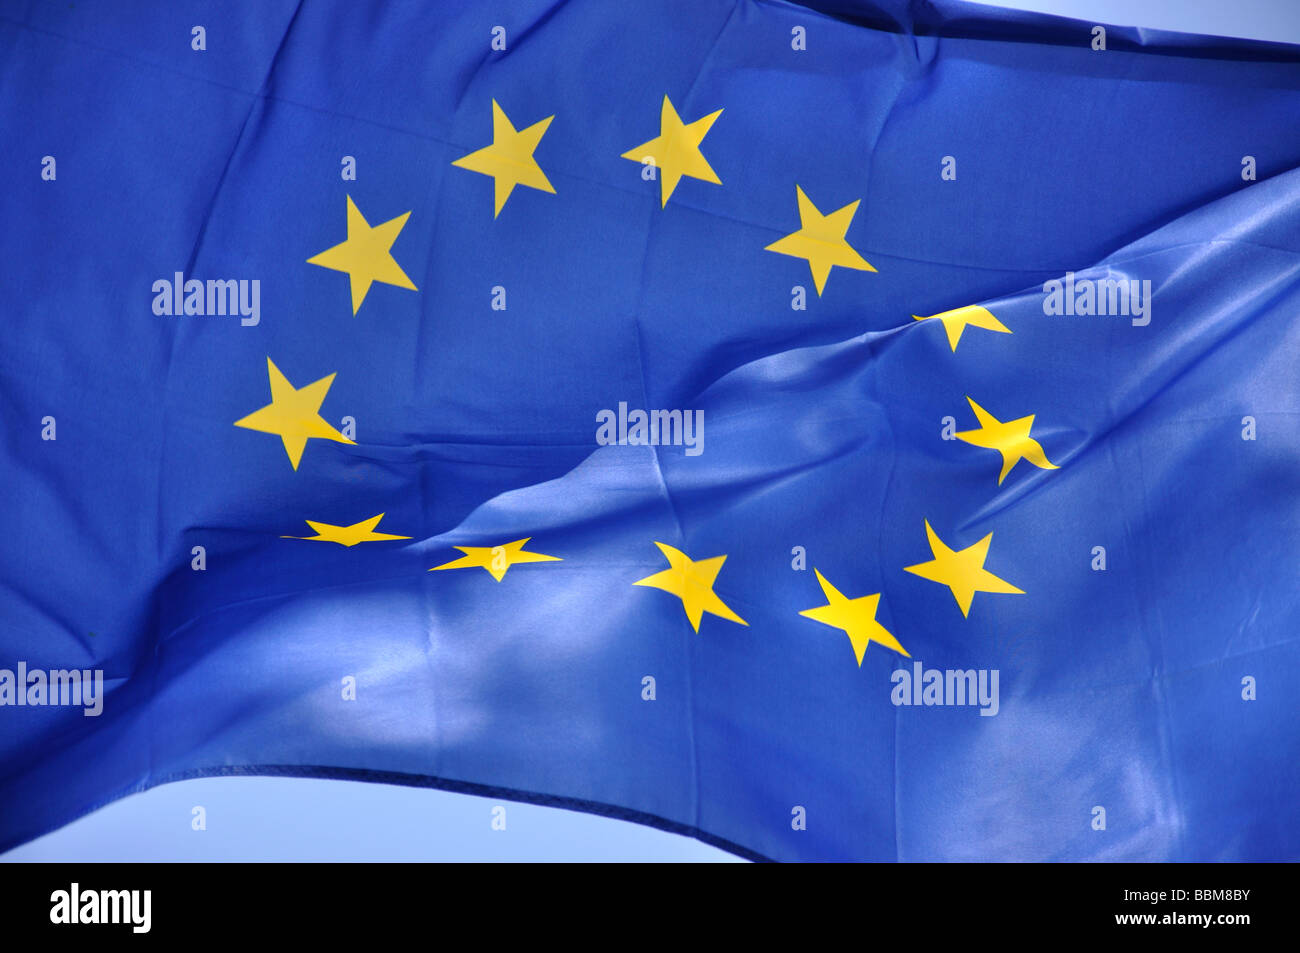 European Union flag, Cala d'Or, Santanyi Municipality, Mallorca, Balearic Islands, Spain - Stock Image